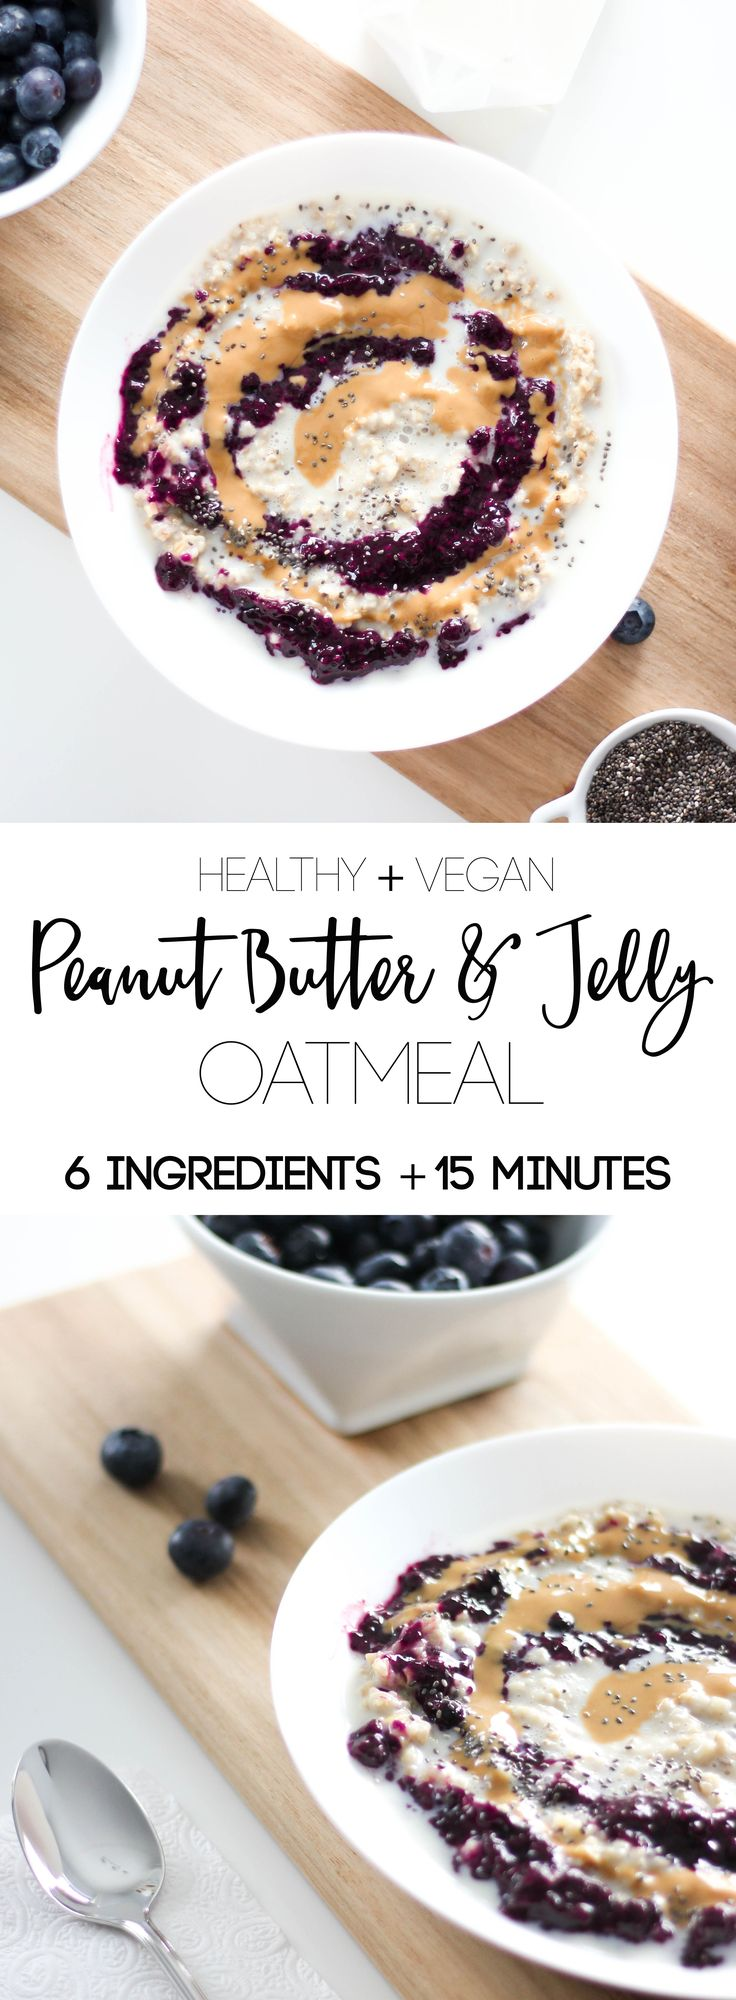 Peanut Butter and Jelly Oatmeal- A new spin on a classic that will make you a gold star mom in the morning. Natural peanut butter, triple berry chia seed jam, steel cut oats, almond milk, and maple syrup, makes for a healthy and delicious breakfast in 15 minutes.